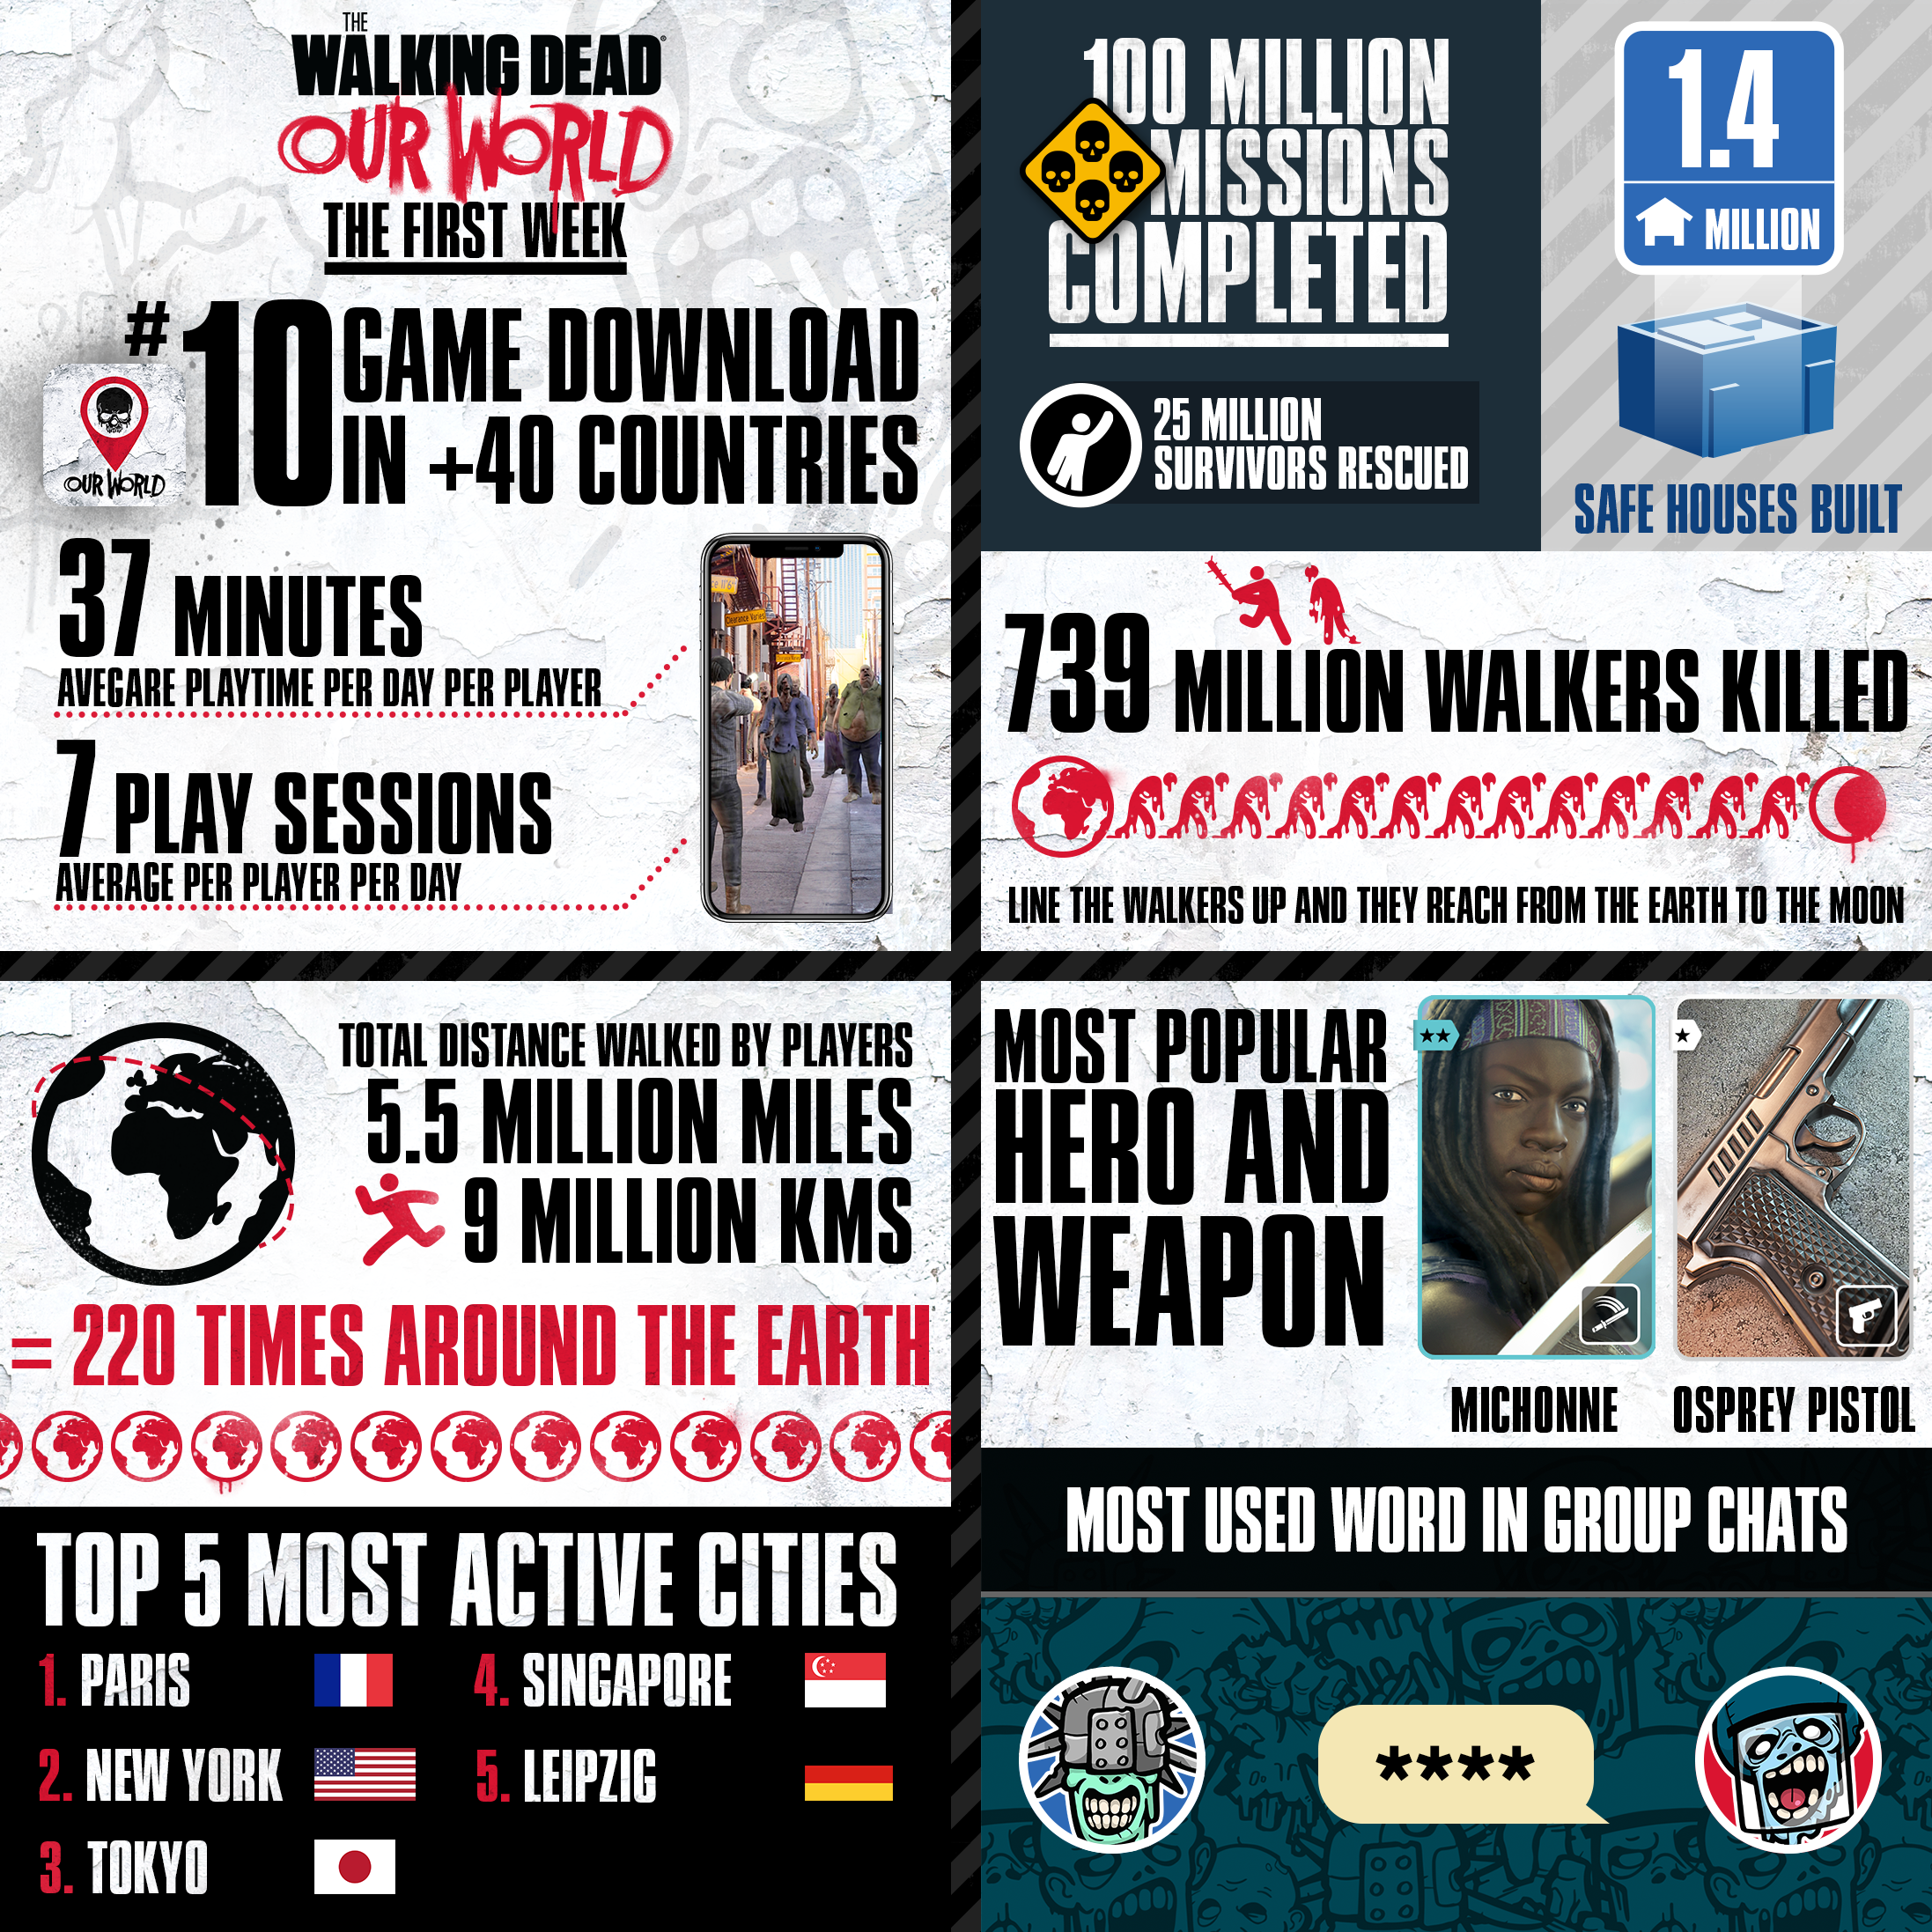 The Walking Dead: Our World infographic